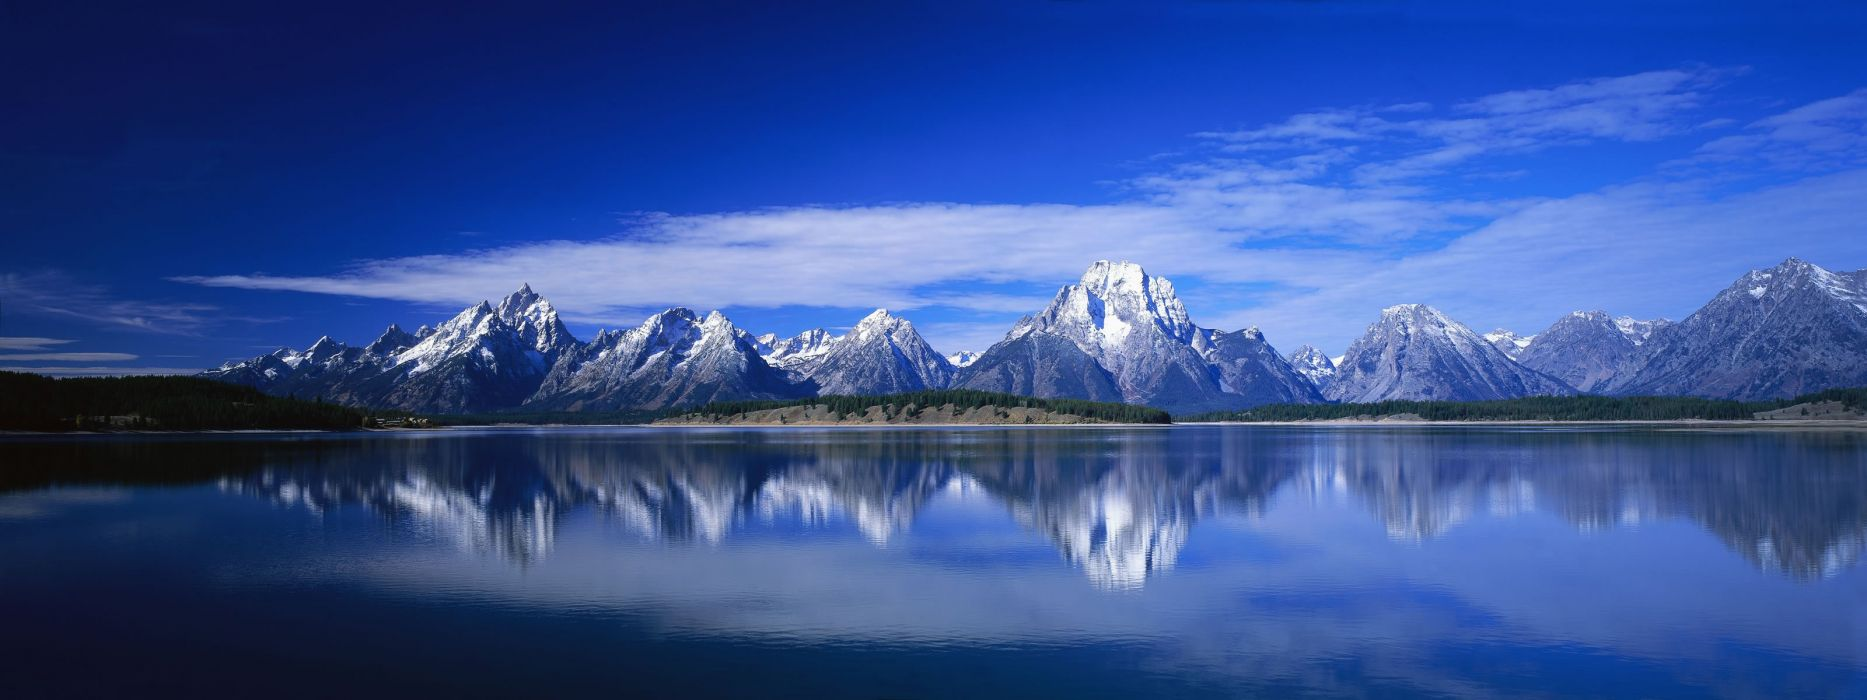 panorama dual monitor blue sky panorama dual monitor mountain forest lake reflection in mirror wallpaper